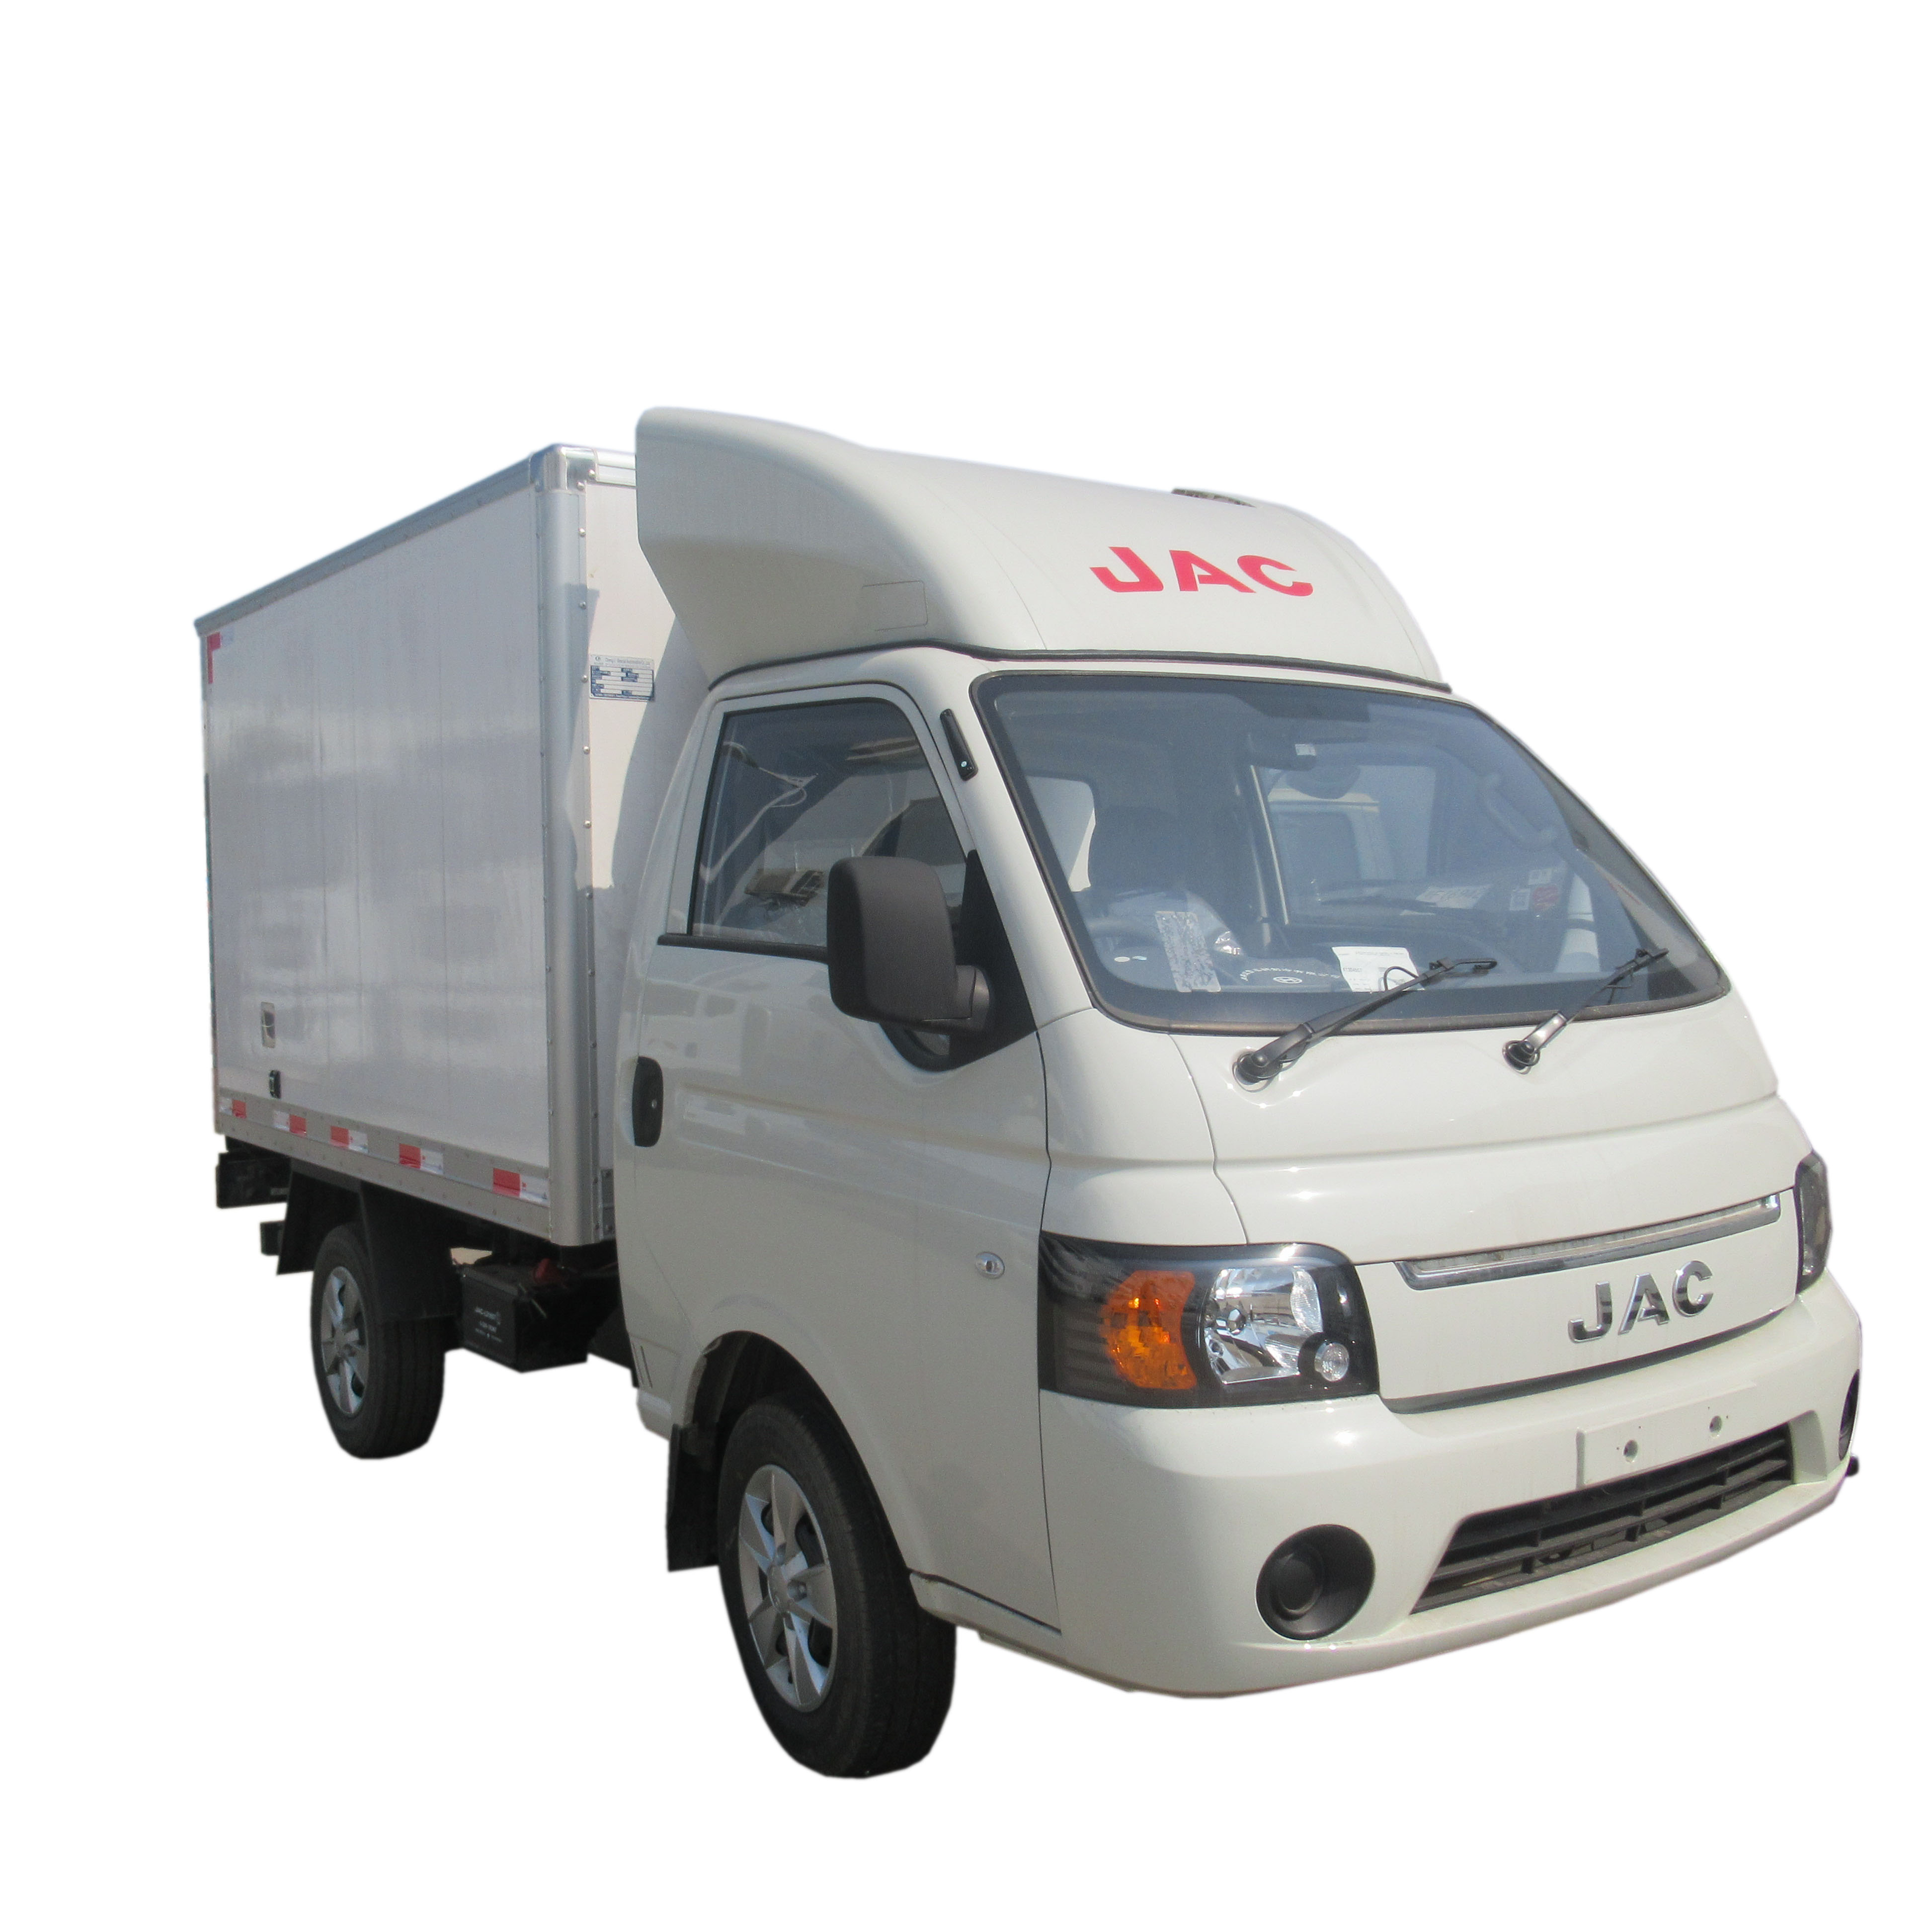 Jac 4x2 1 5 Ton 1ton 2 Ton Meat Hook Stainless Steel Polyurethane Foam Beef  Reefer Truck Vans For Meat Delivery - Buy Vans For Meat Delivery,Small